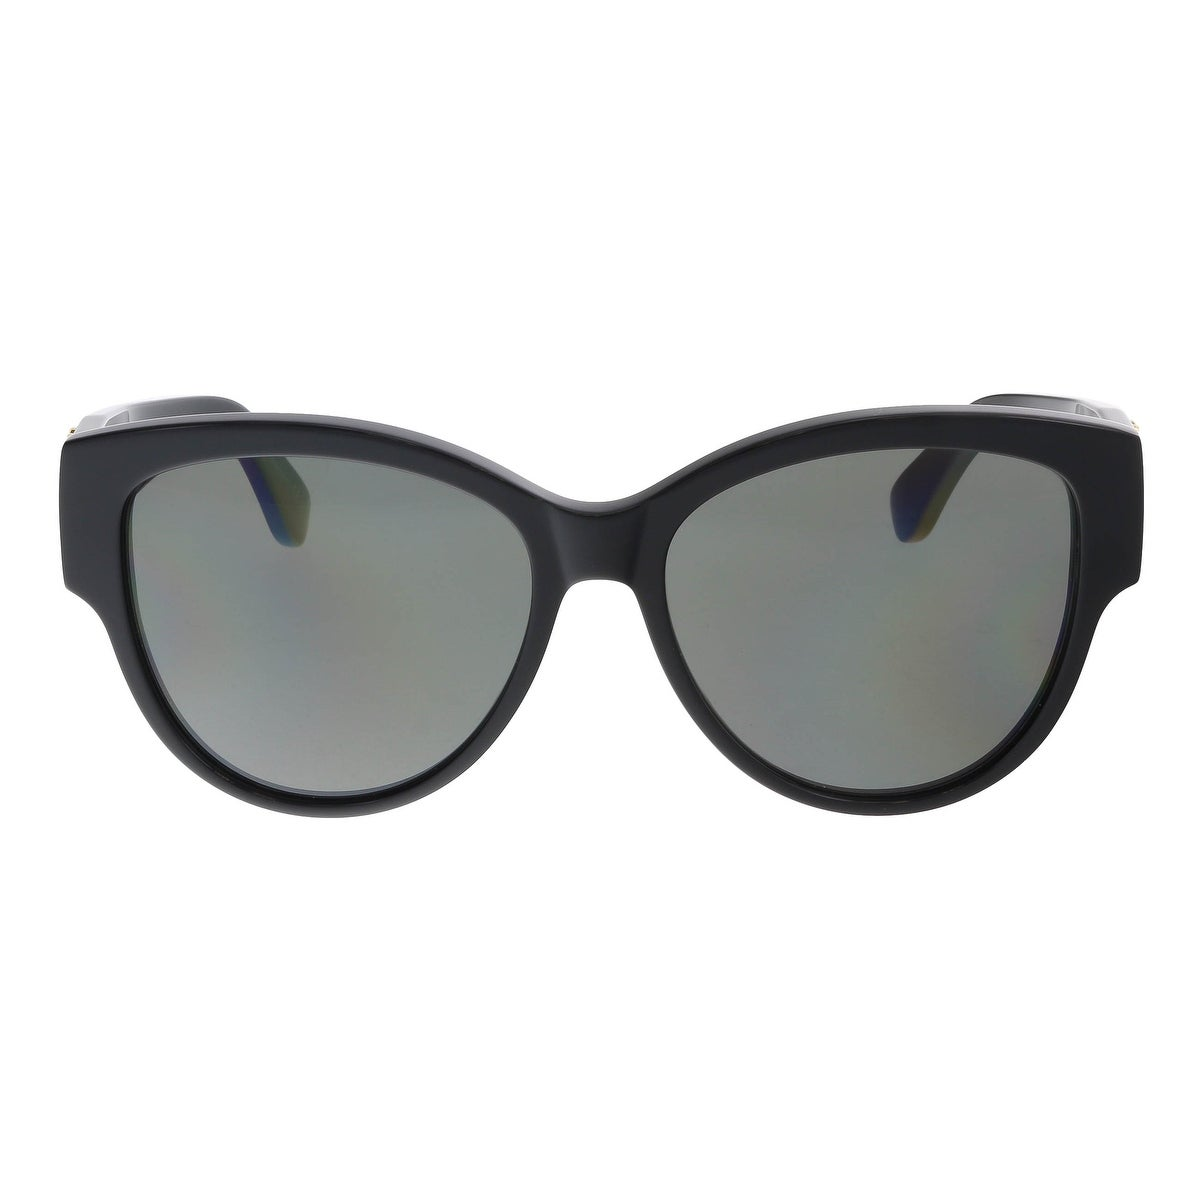 5cf58619135fd Shop Saint Laurent SL M3-002 Black Cat Eye Sunglasses - 55-16-140 - Free  Shipping Today - Overstock - 16693314